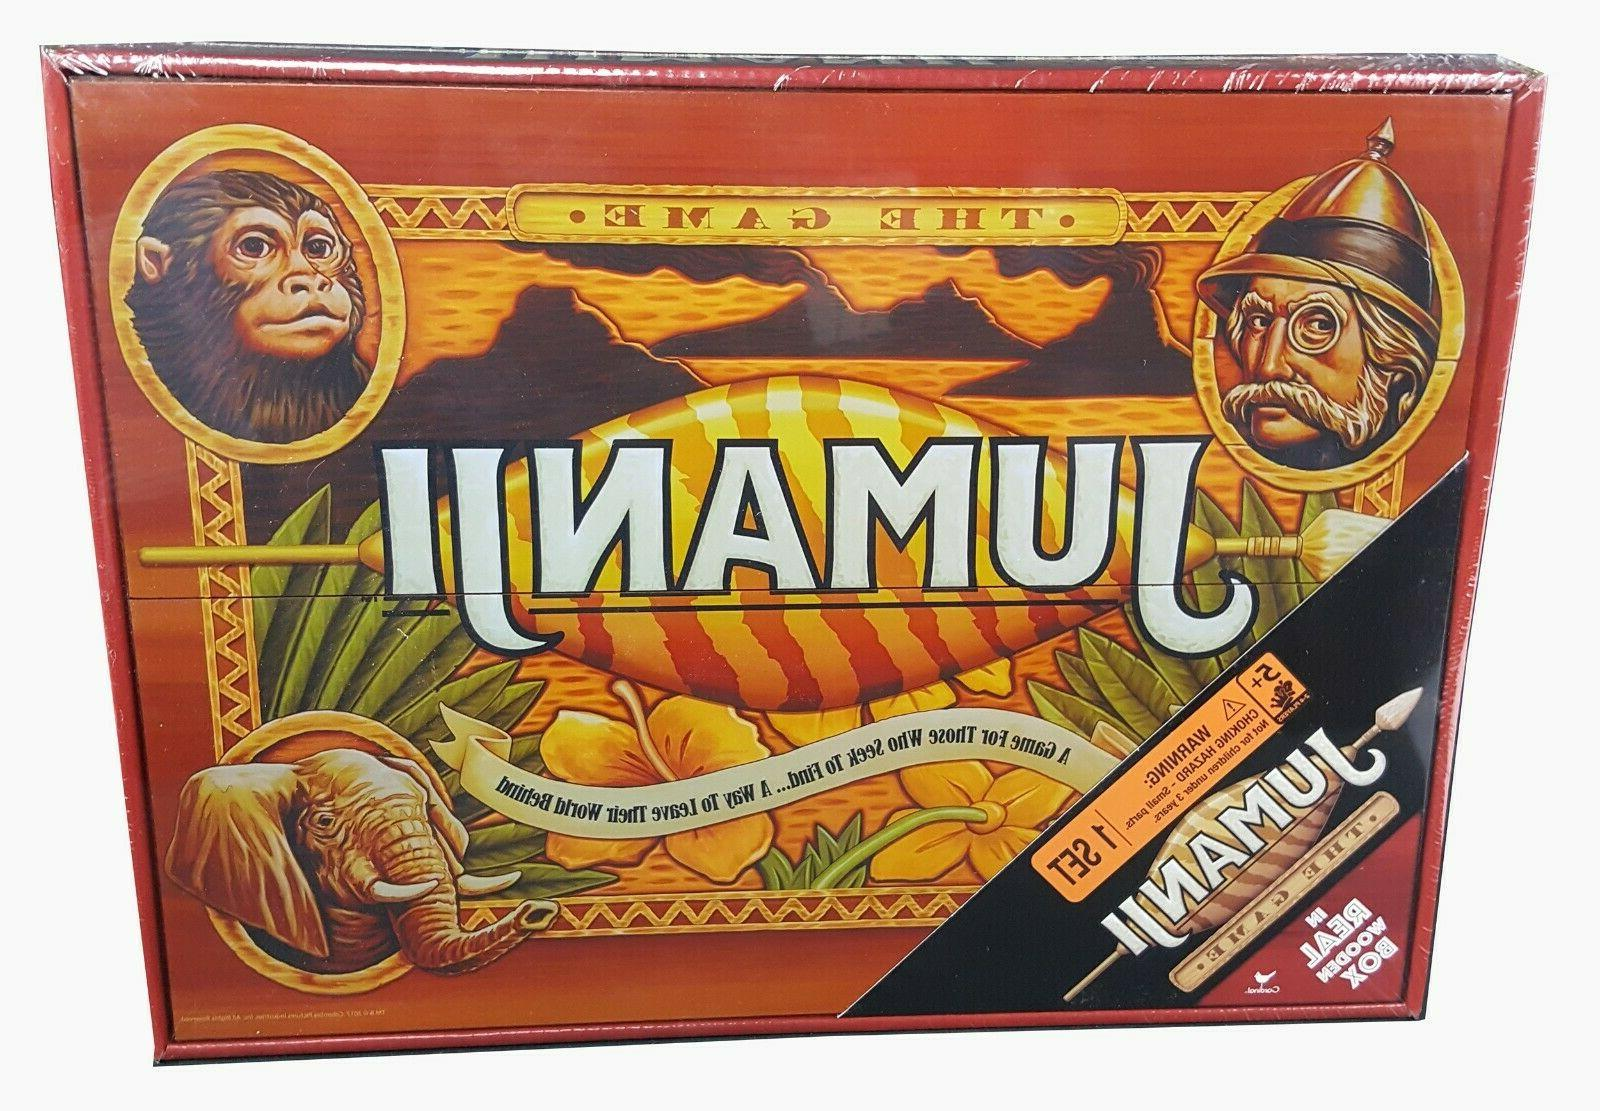 Jumanji Real Wooden Box Toys Puzzles Board Games Family